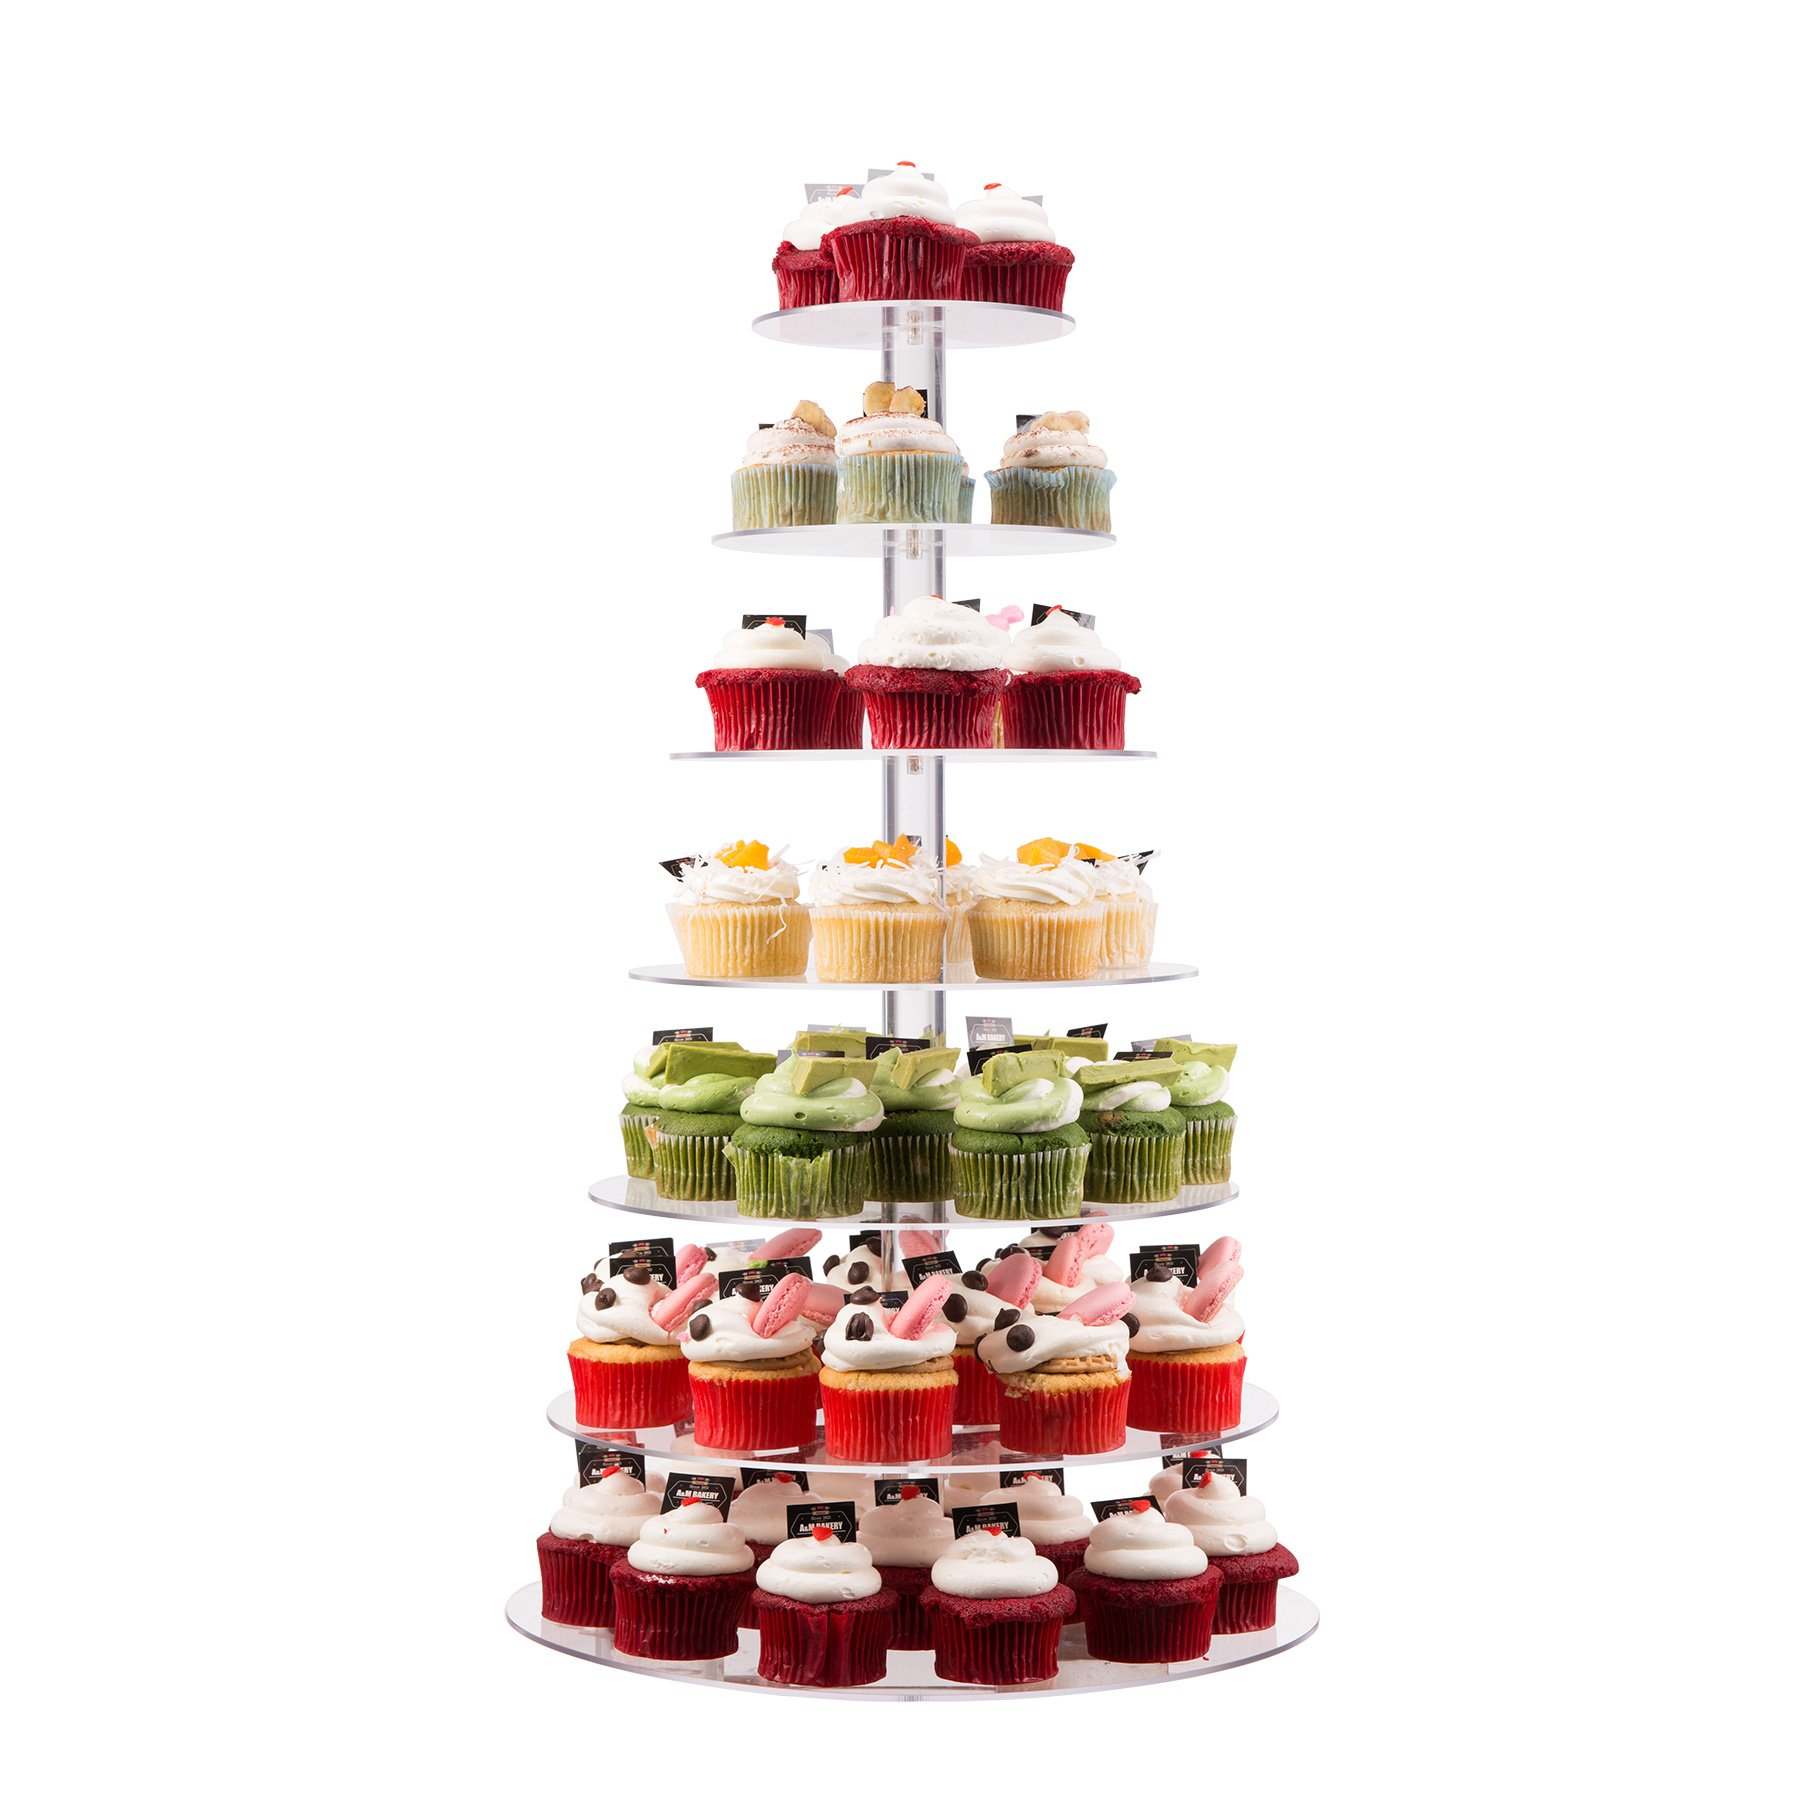 CO-Z 7-Tier Acrylic Round Cupcake Stand Tower fits 80x5cm Cupcakes for Wedding Party 5.9''+7.5''+8.8''+10''+11.8''+13.4''+14,8''